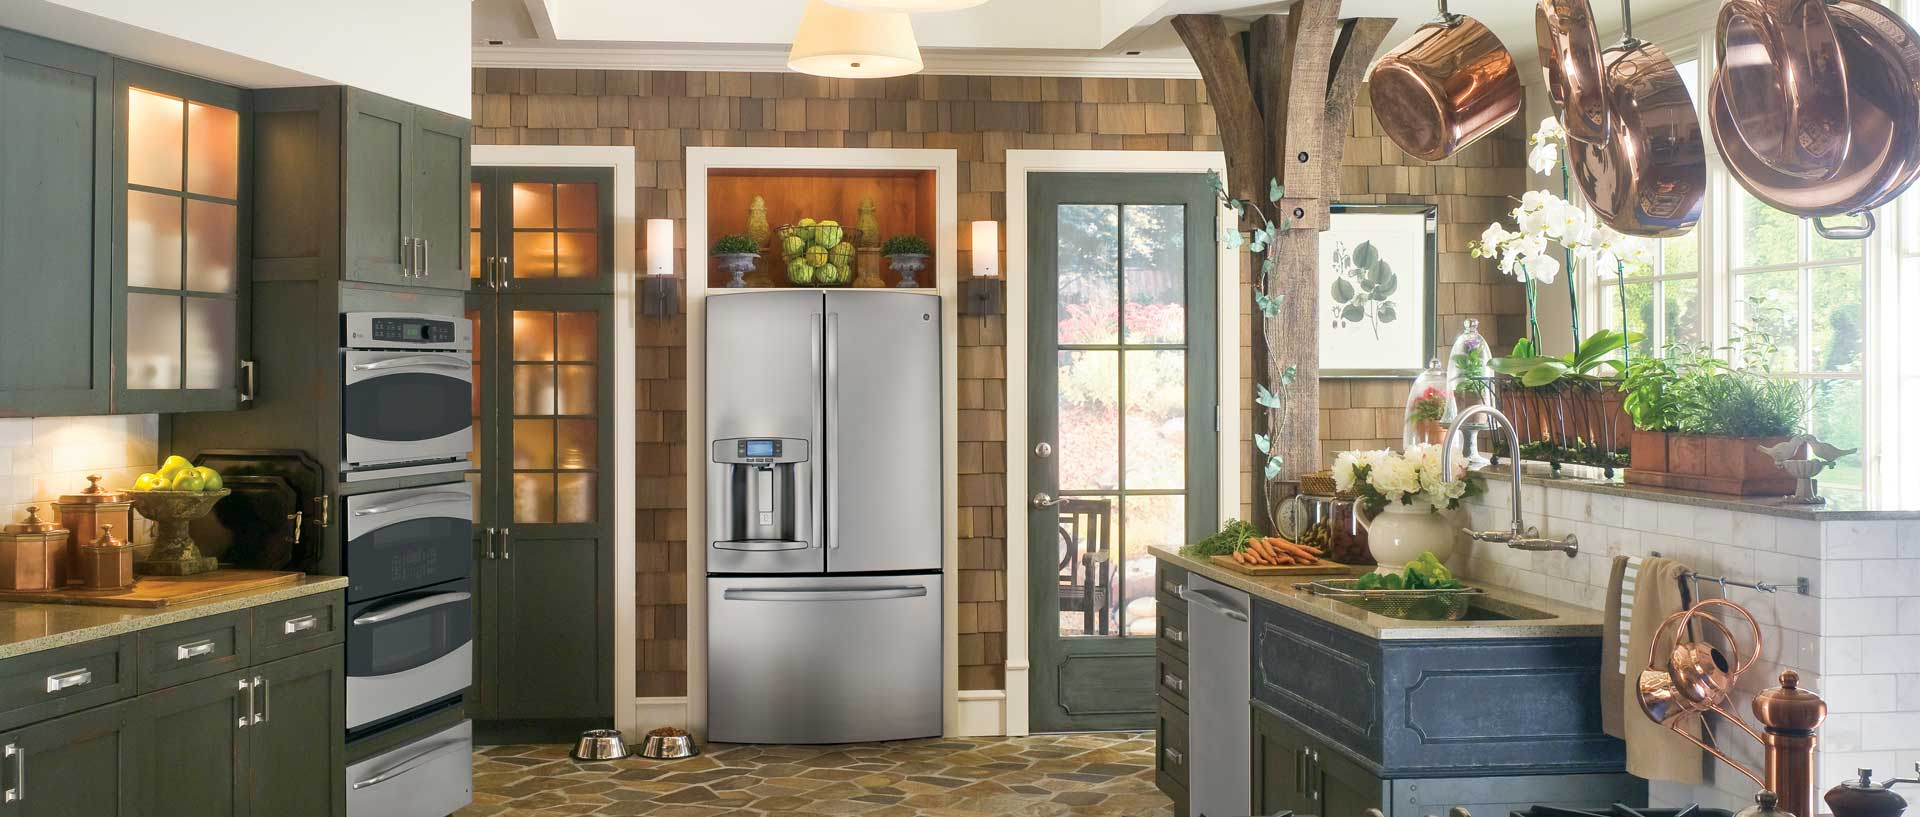 Ge french door refrigerators consumer reports rubansaba